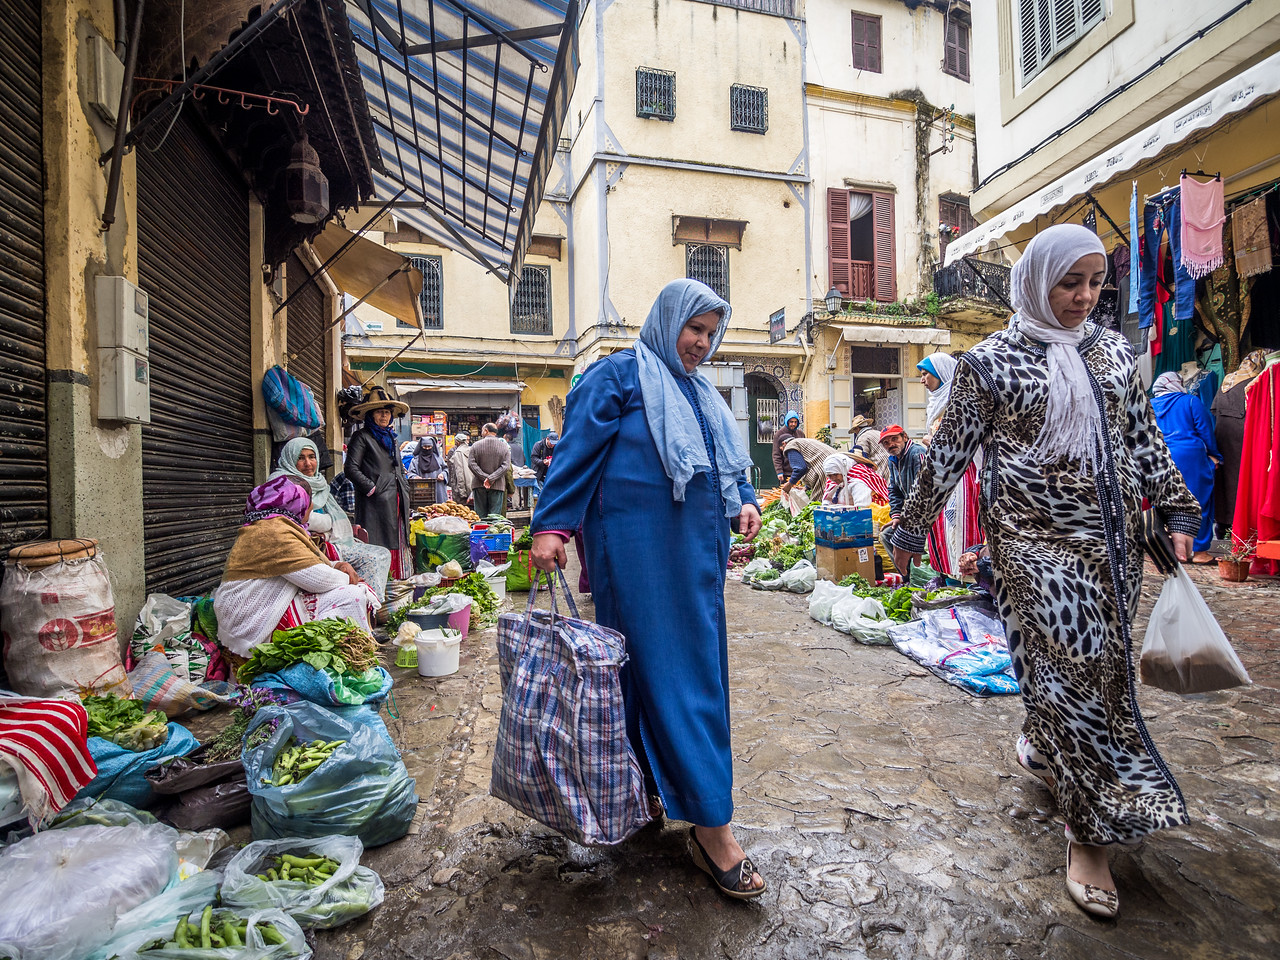 At the Thursday Market, Tangiers